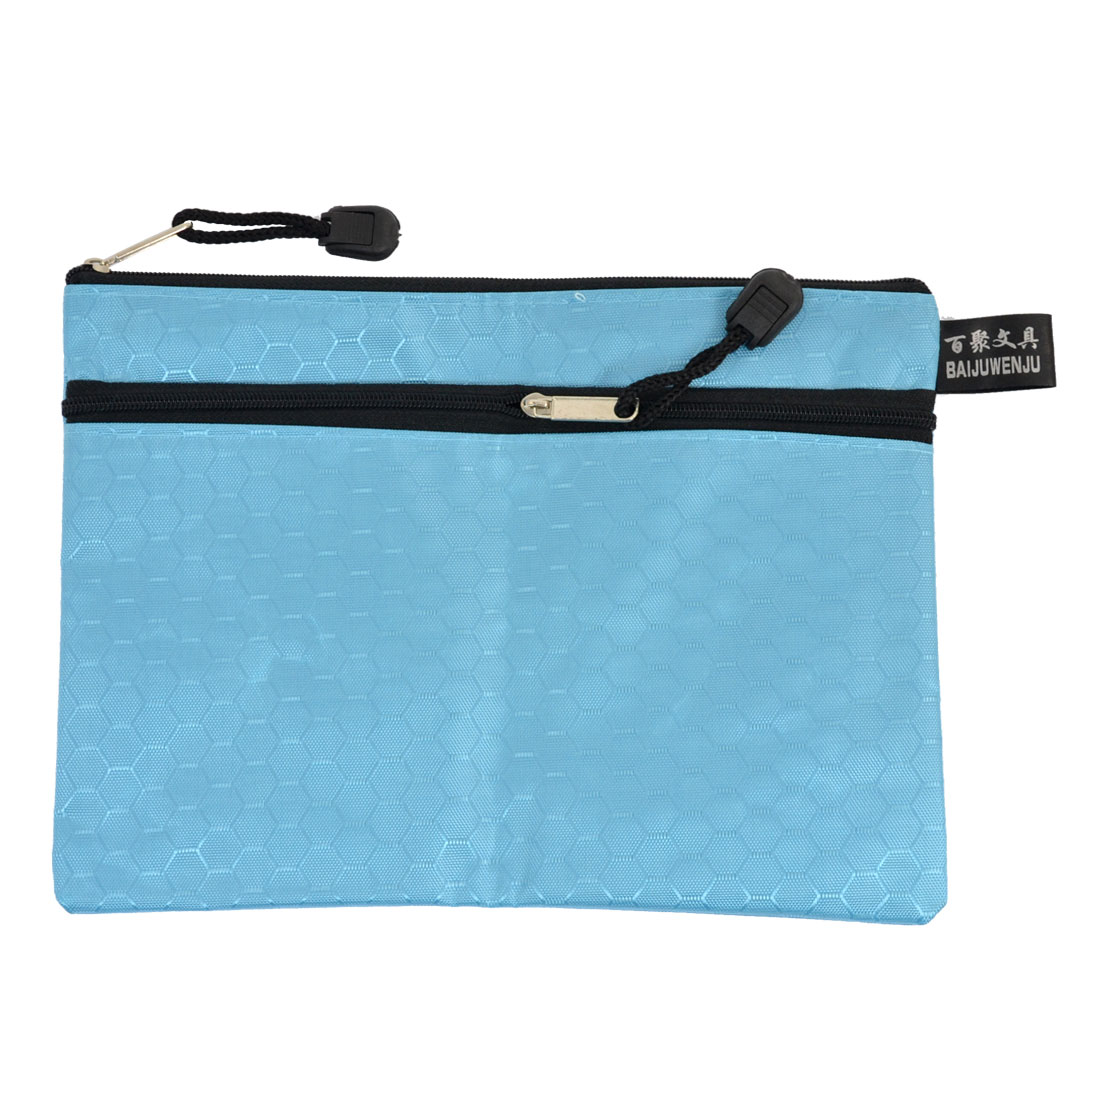 Blue Nylon 2 Compartments A5 File Document Paper Holder Organizer Zipper Bag